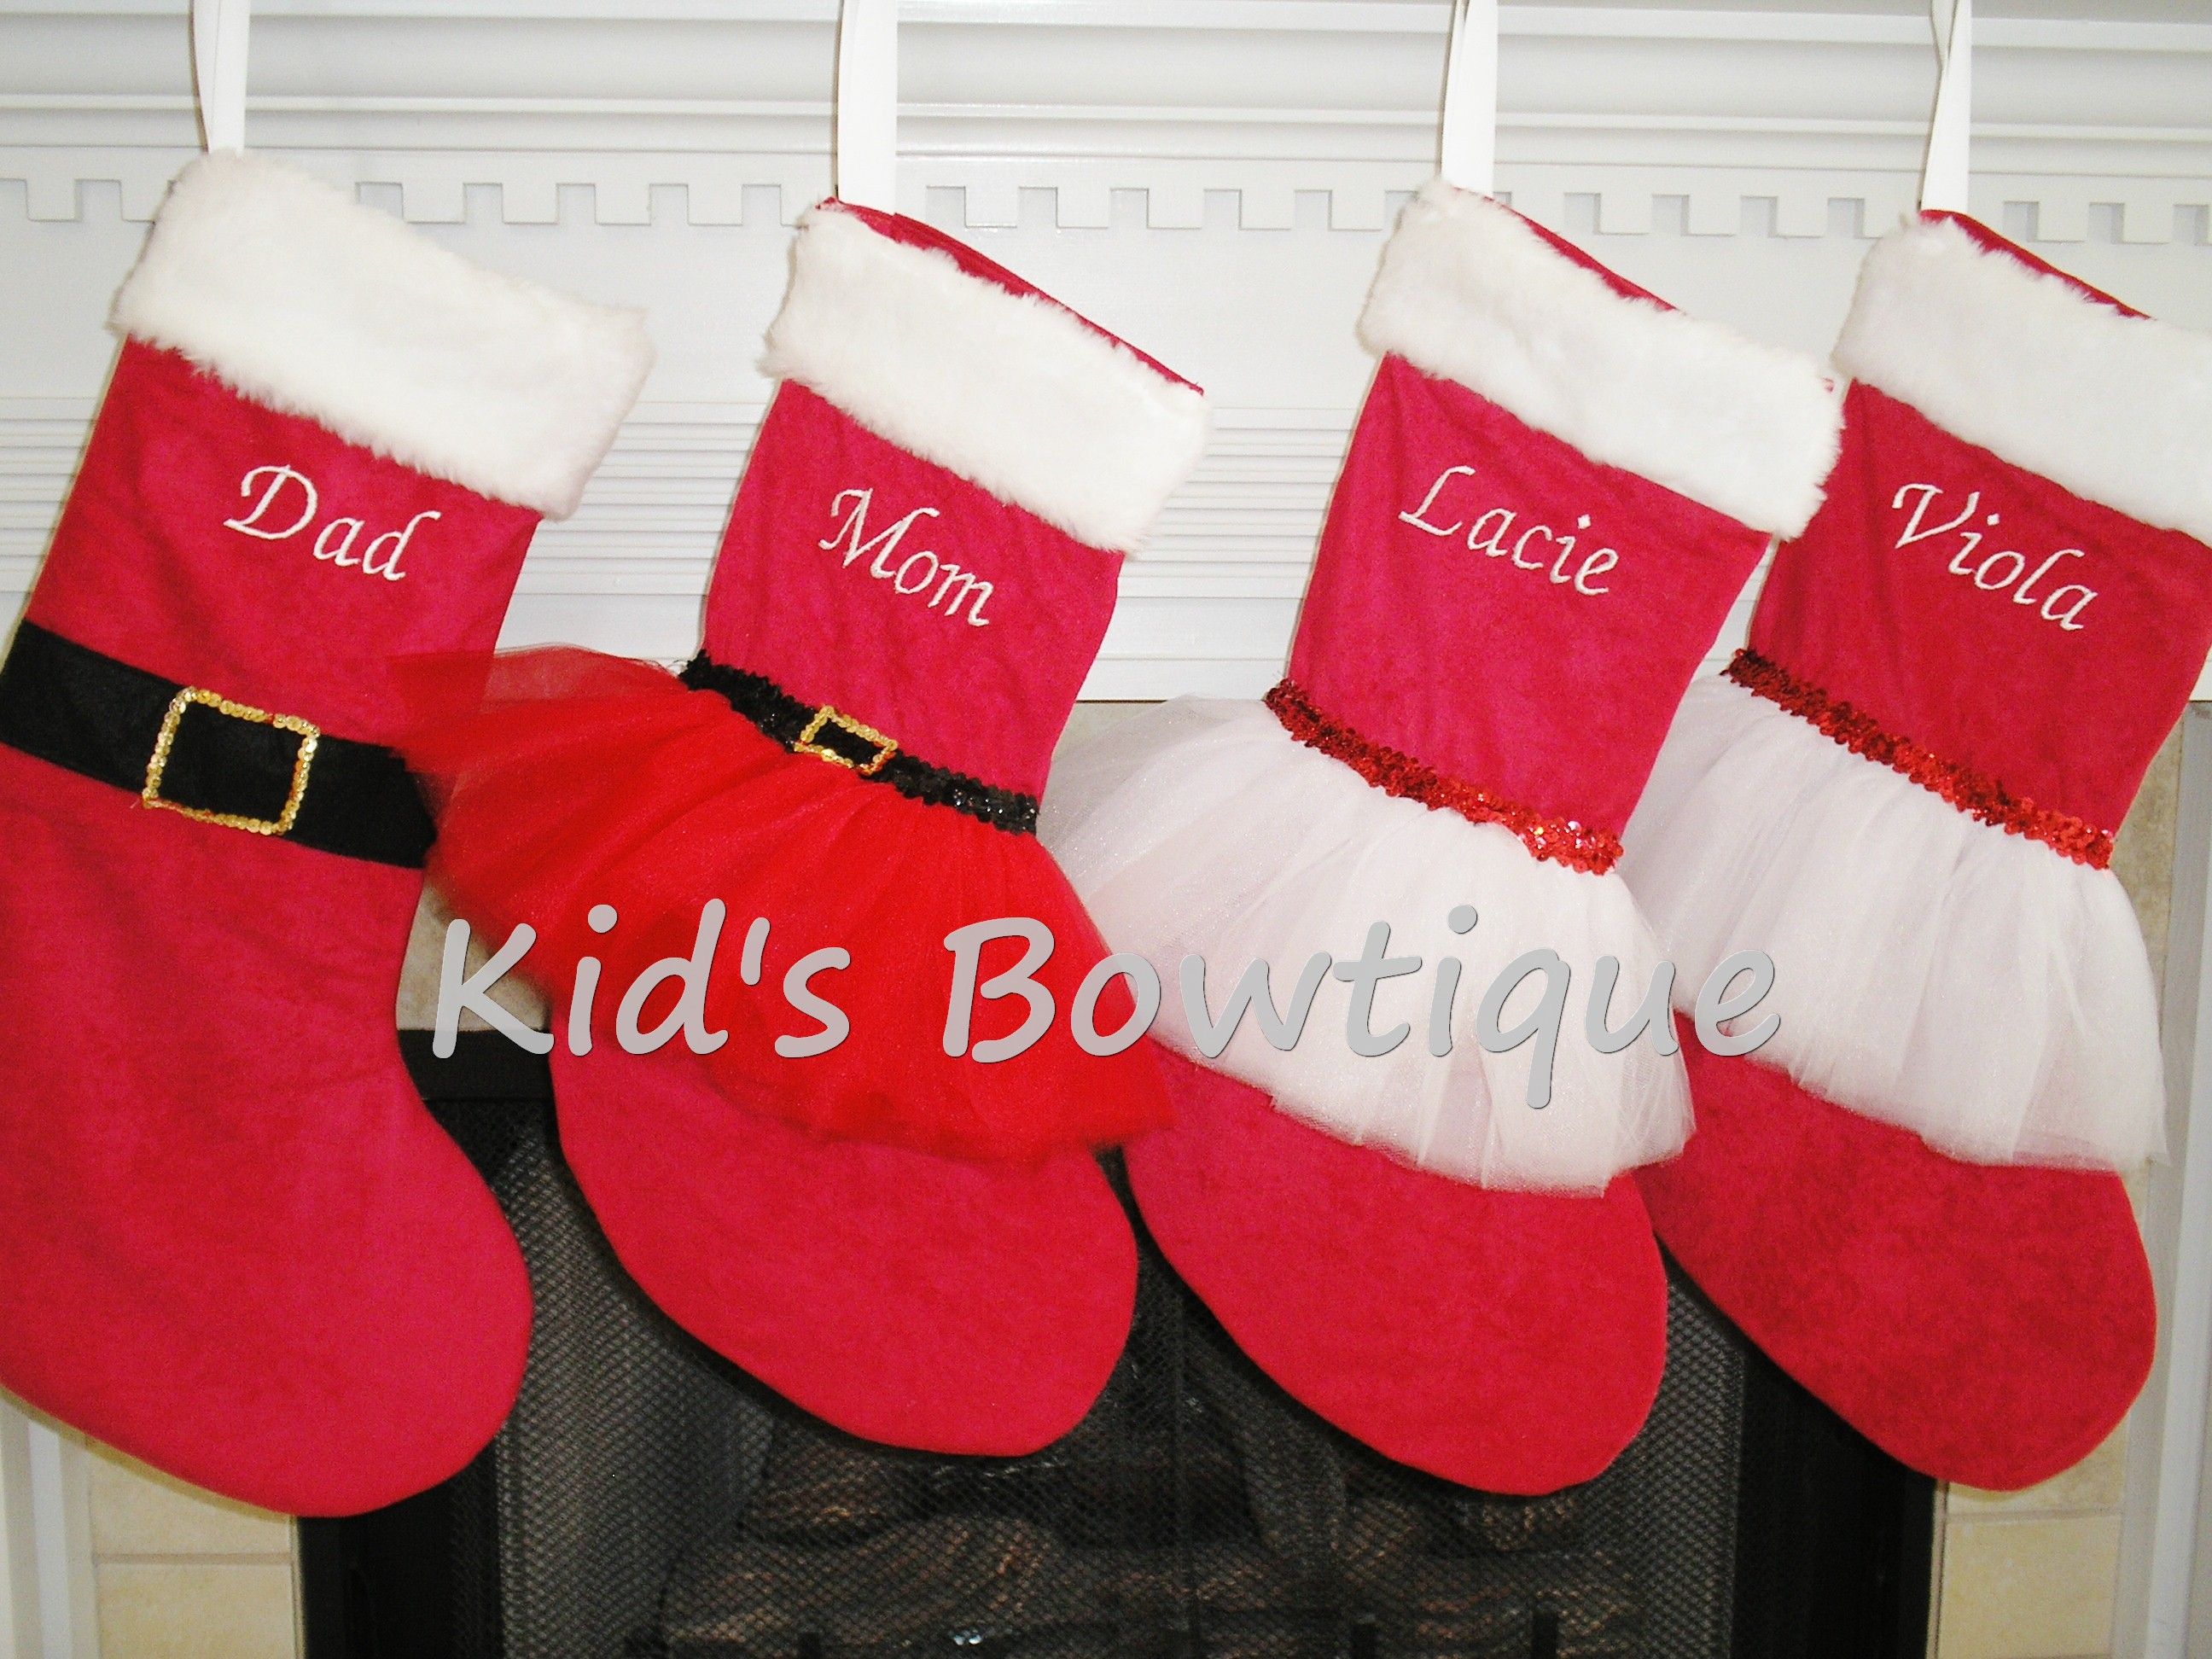 Family Set of Personalized Santa, Mrs.Claus, and Red/White Christmas Tutu Stockings